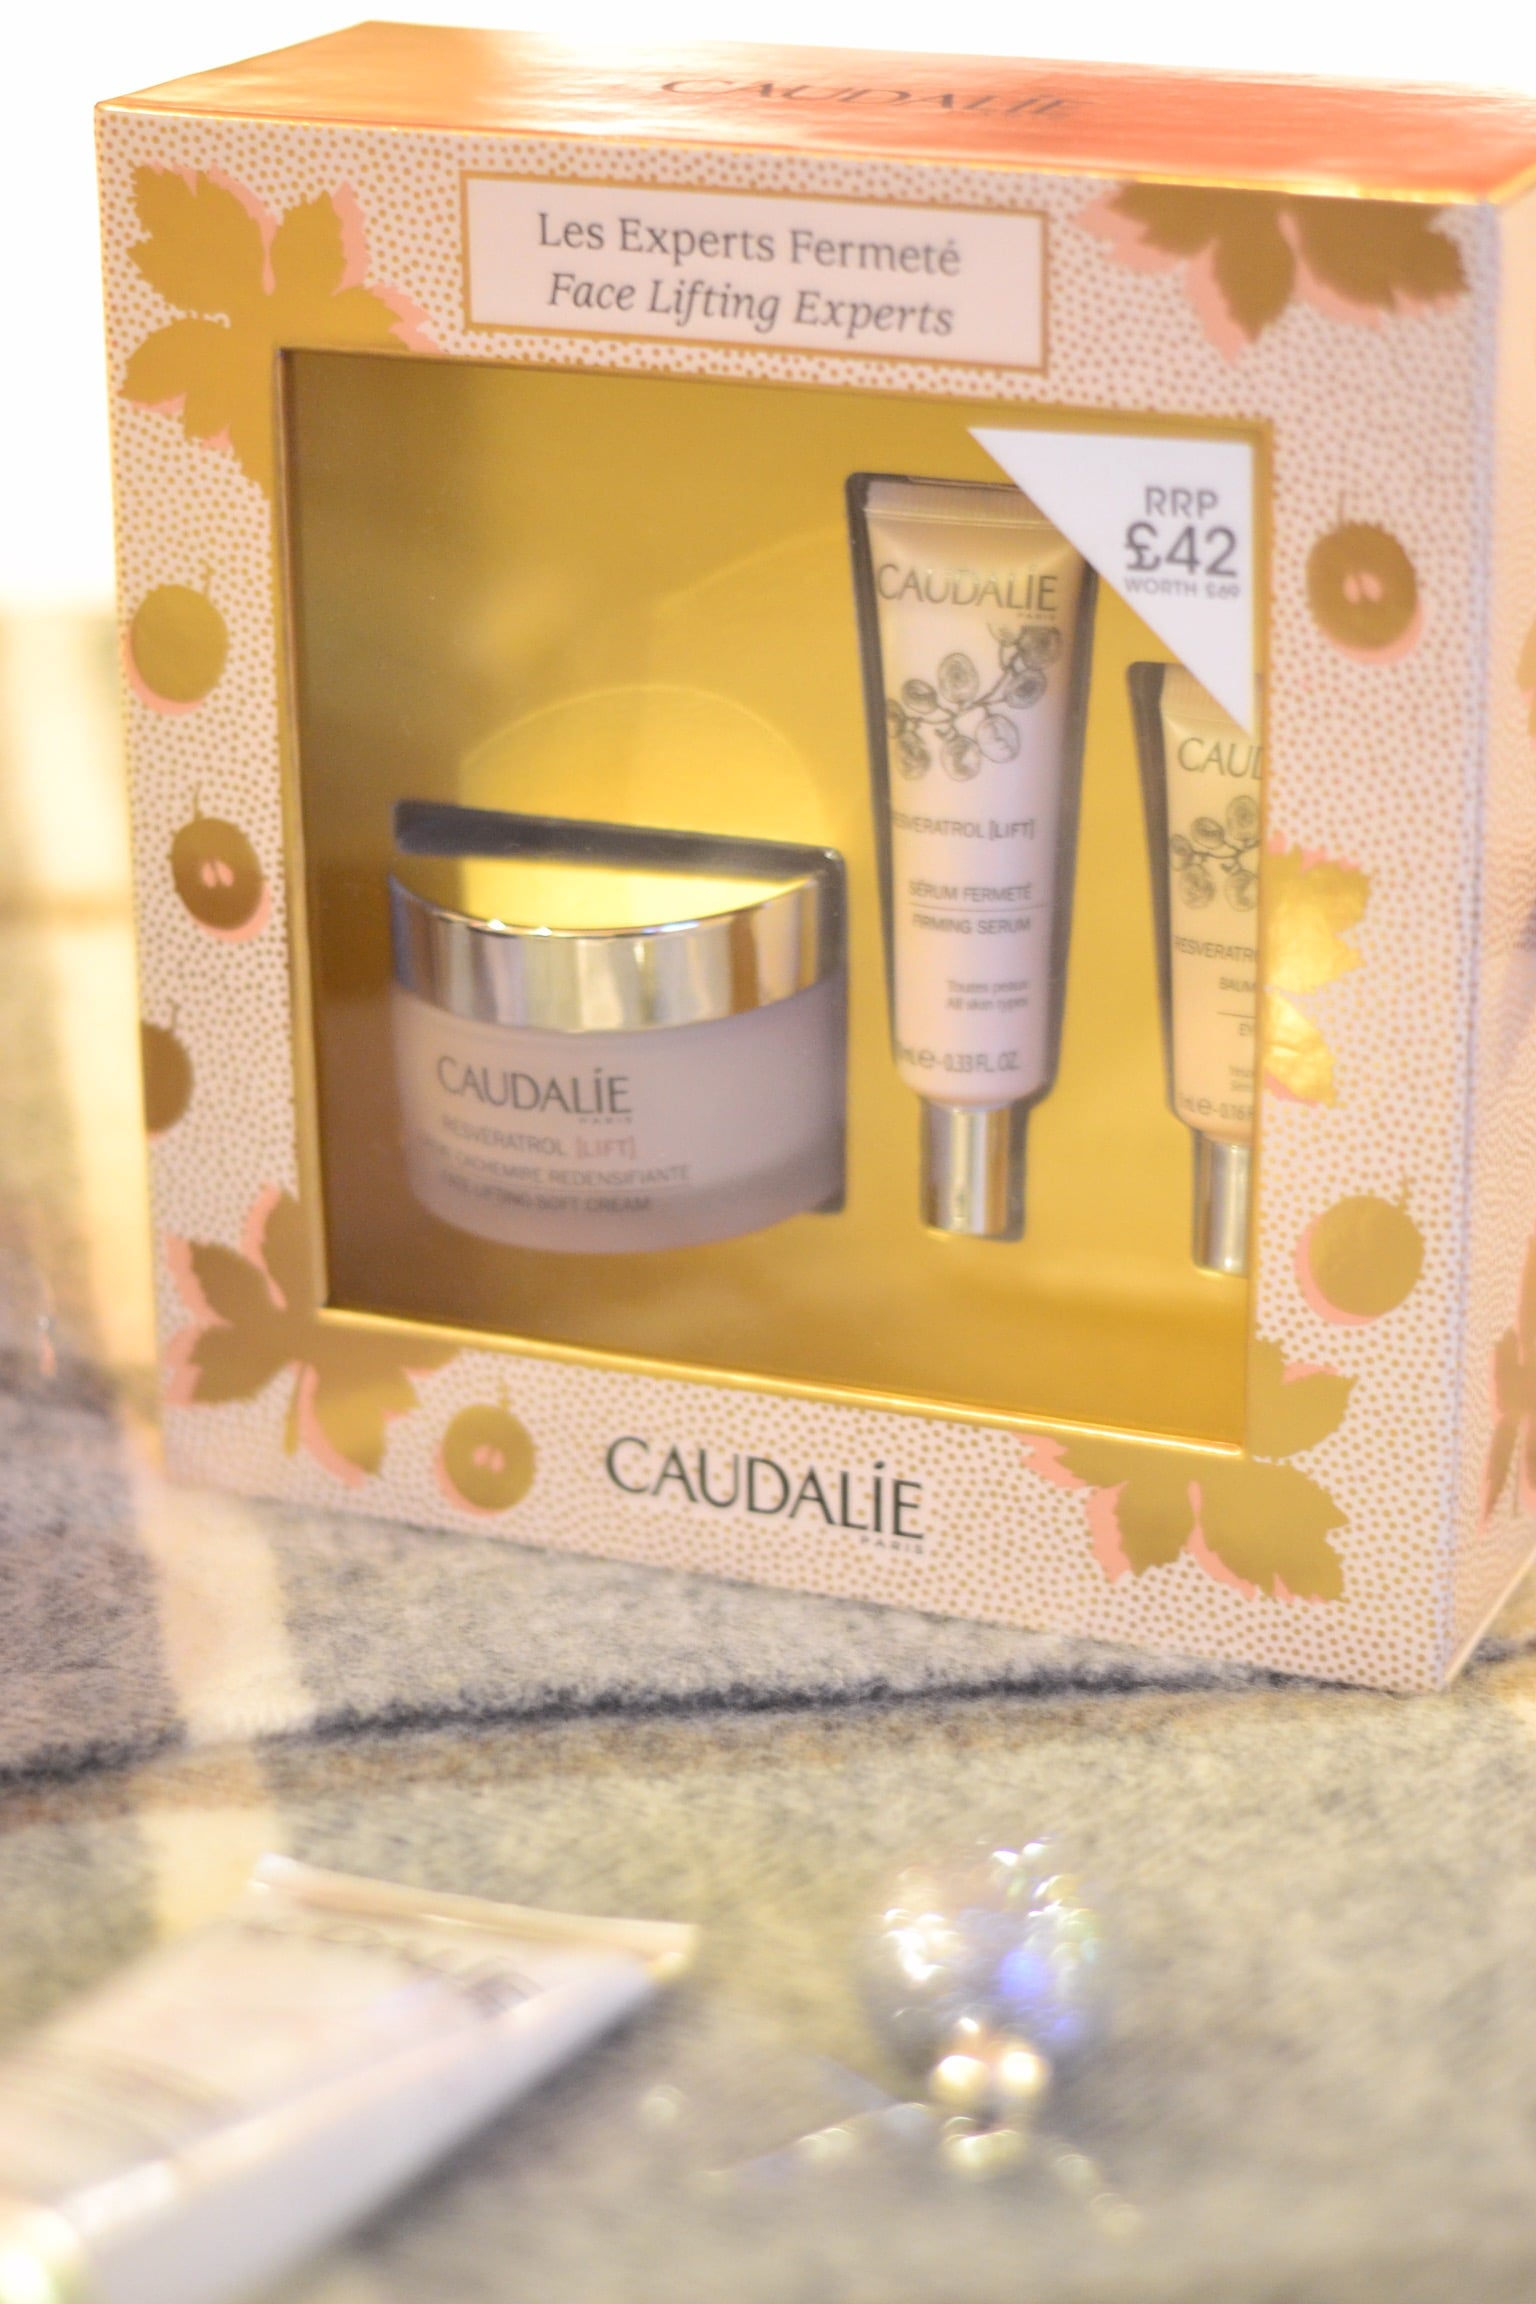 caudalie-face-lifting-skincare-gift-set